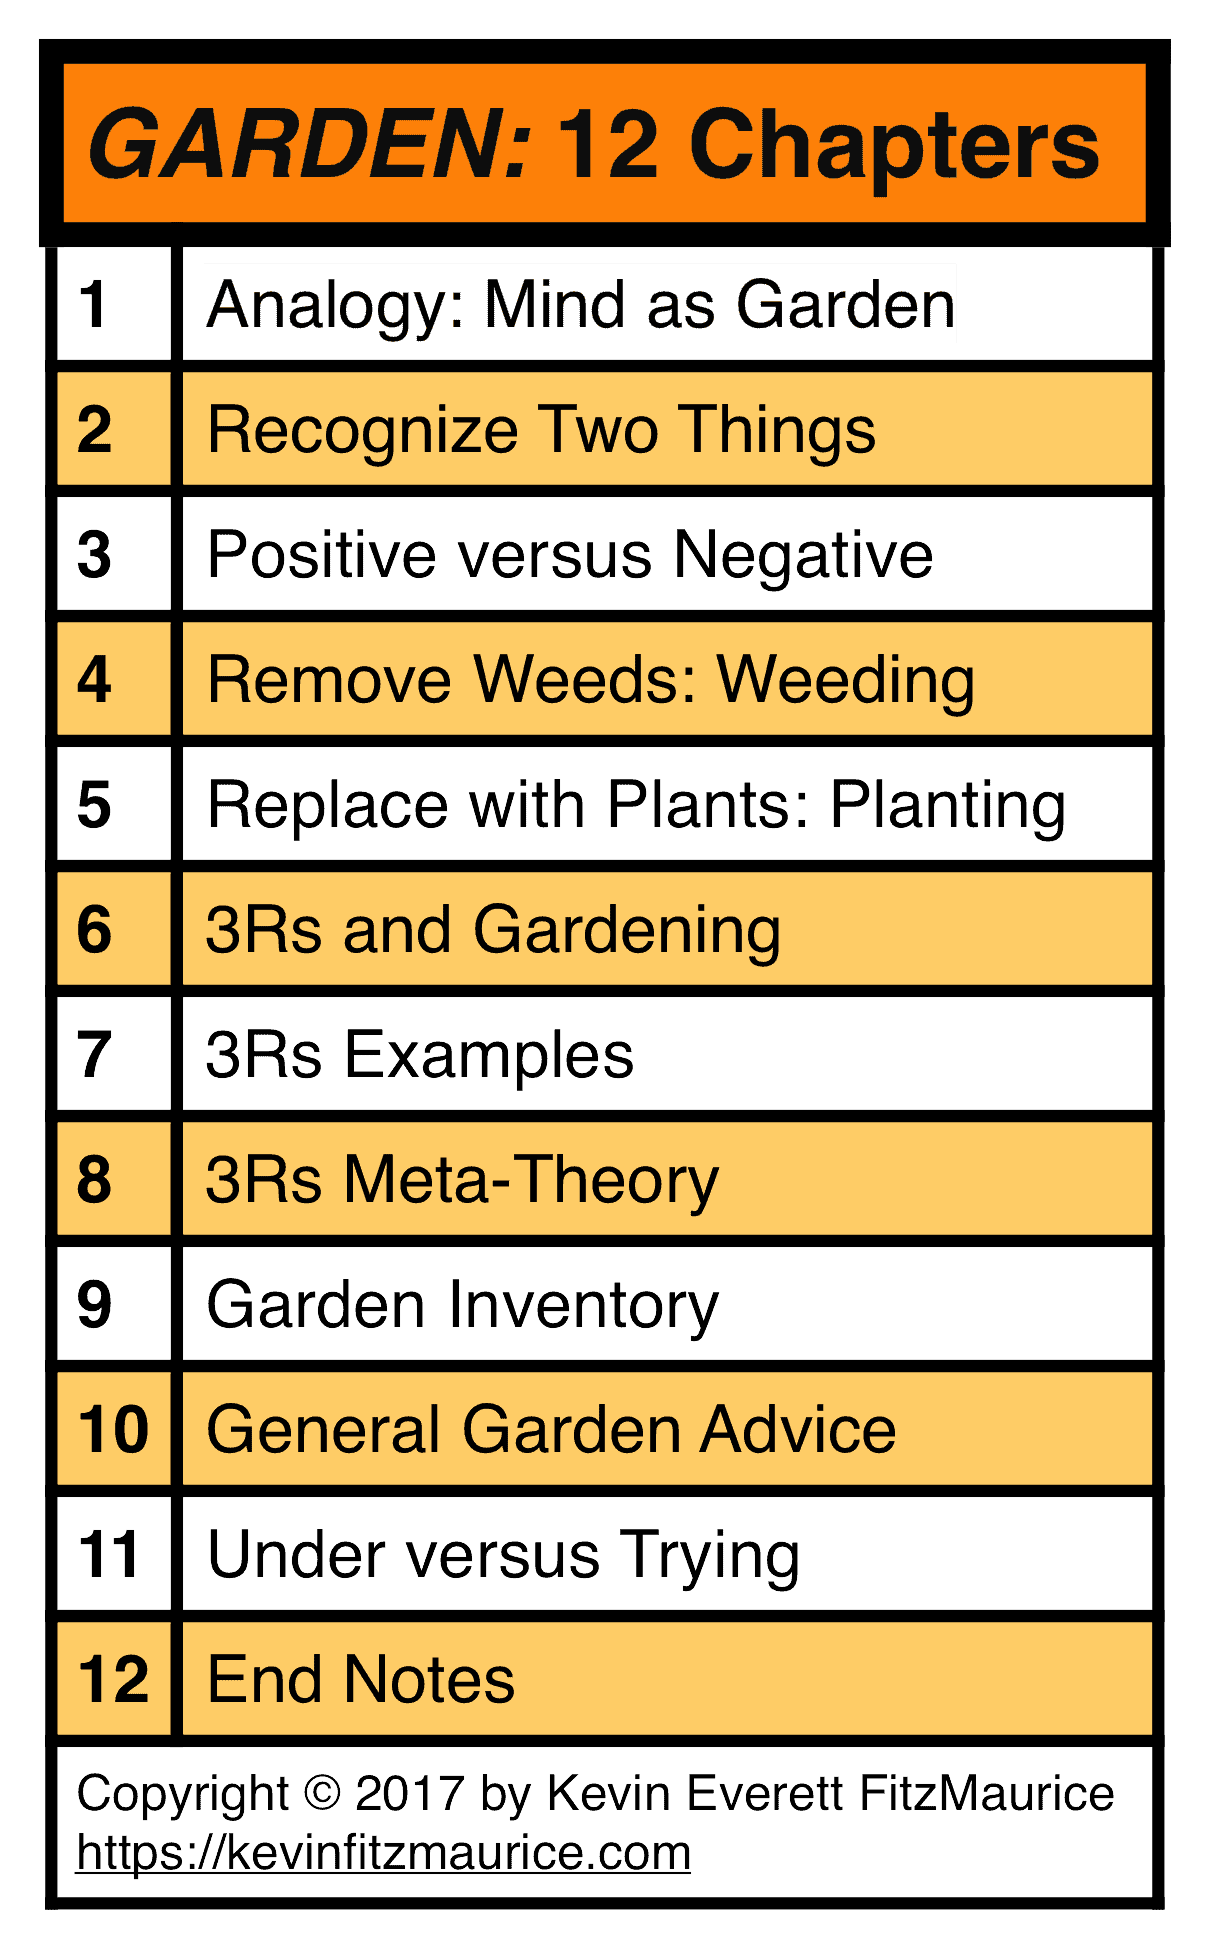 GARDEN Table of 12 Chapters